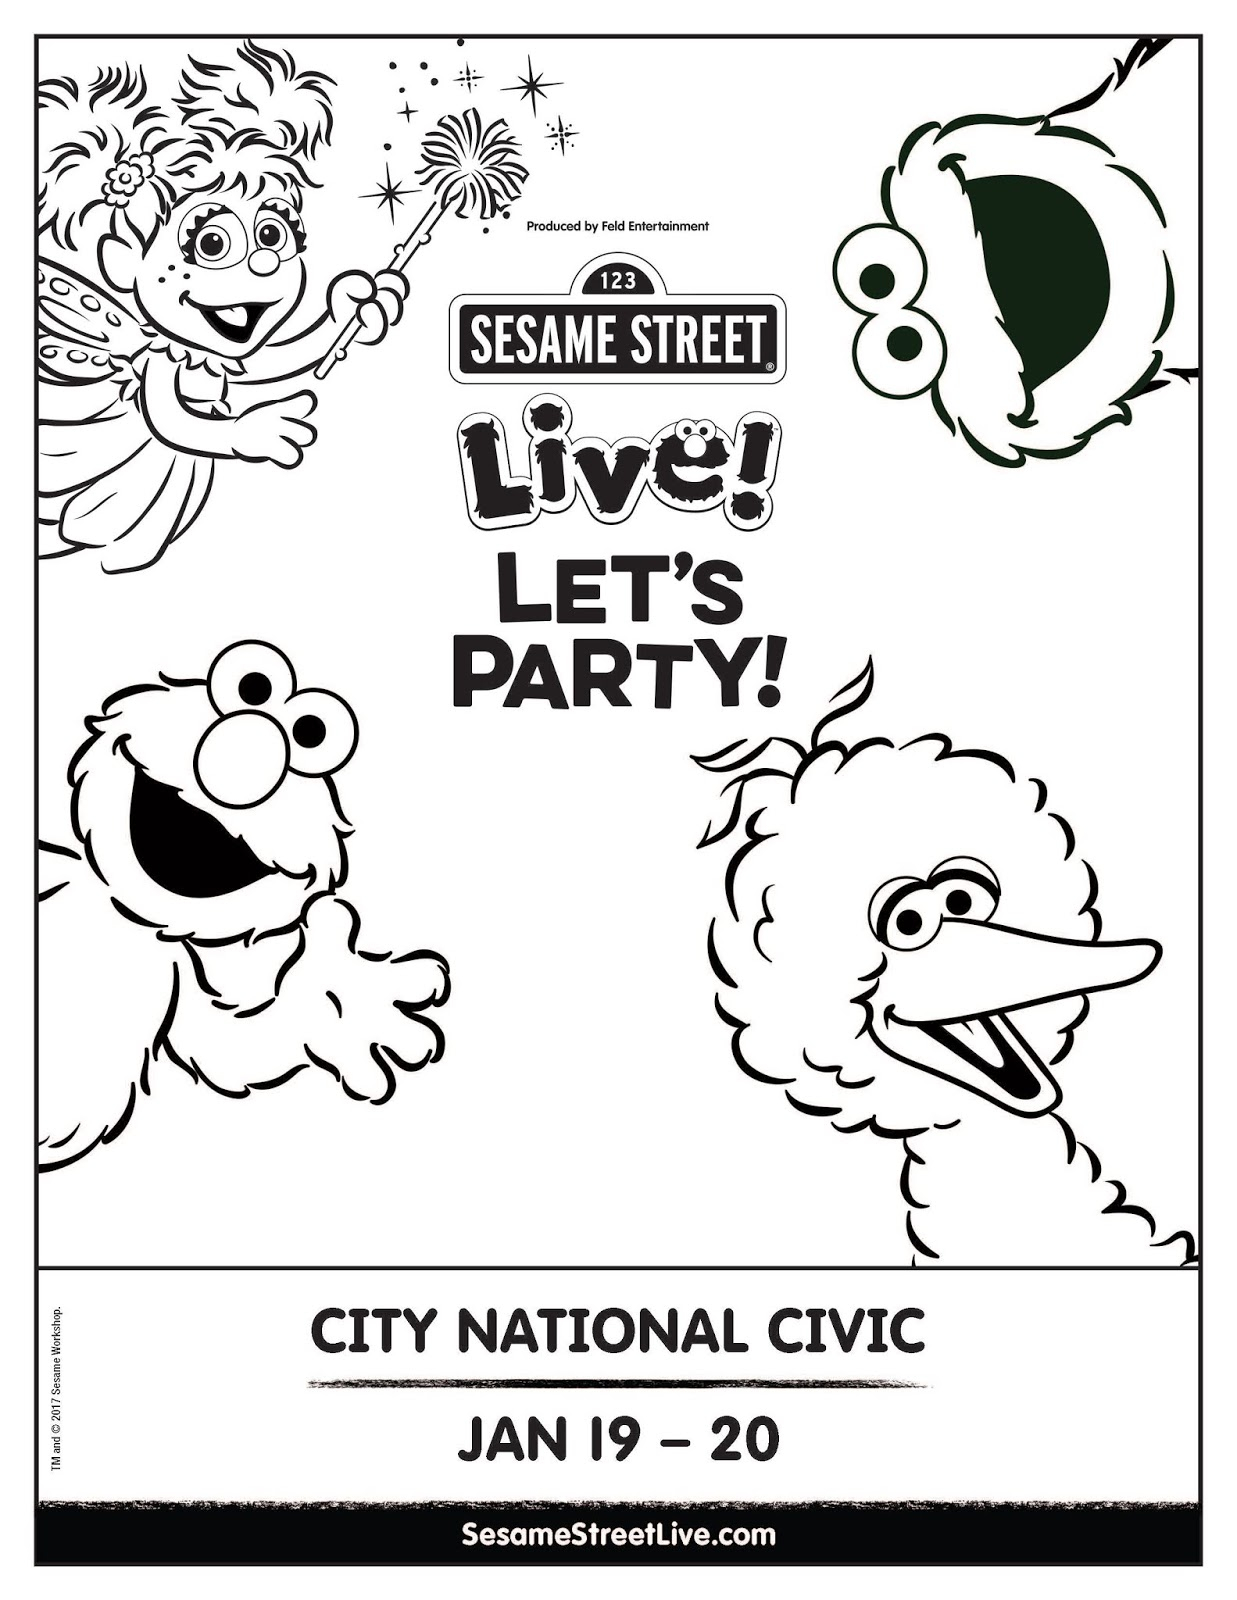 Sesame Street Sign Coloring Page Sesame Street Live Lets Party Coming To The Sf Bay Area Free